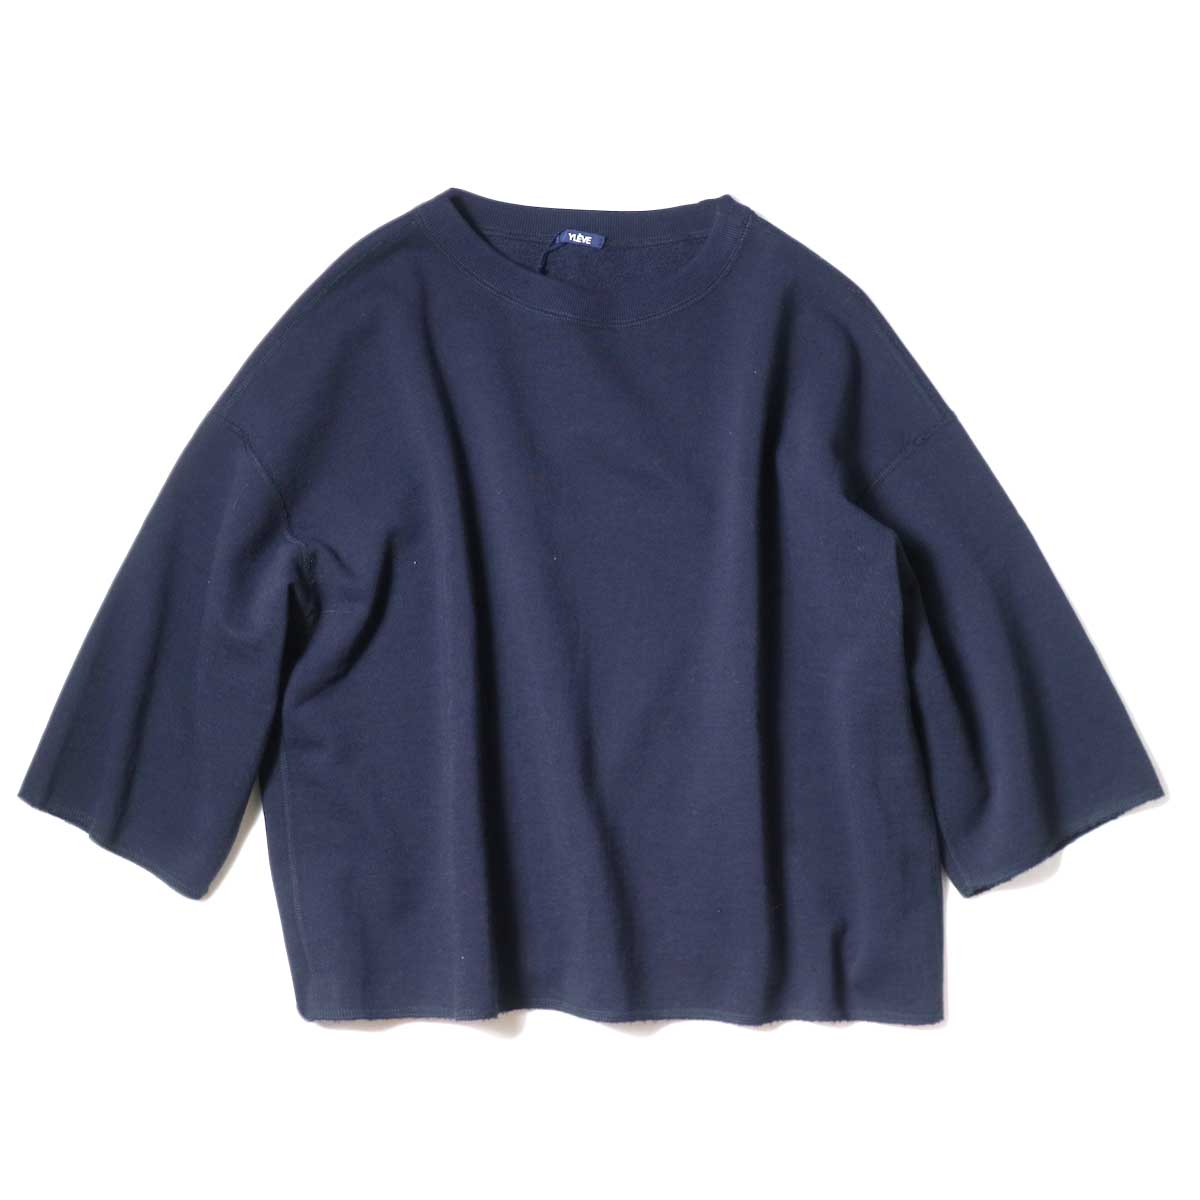 YLEVE / SUVIN CTN CUTOFF BIG (Navy)